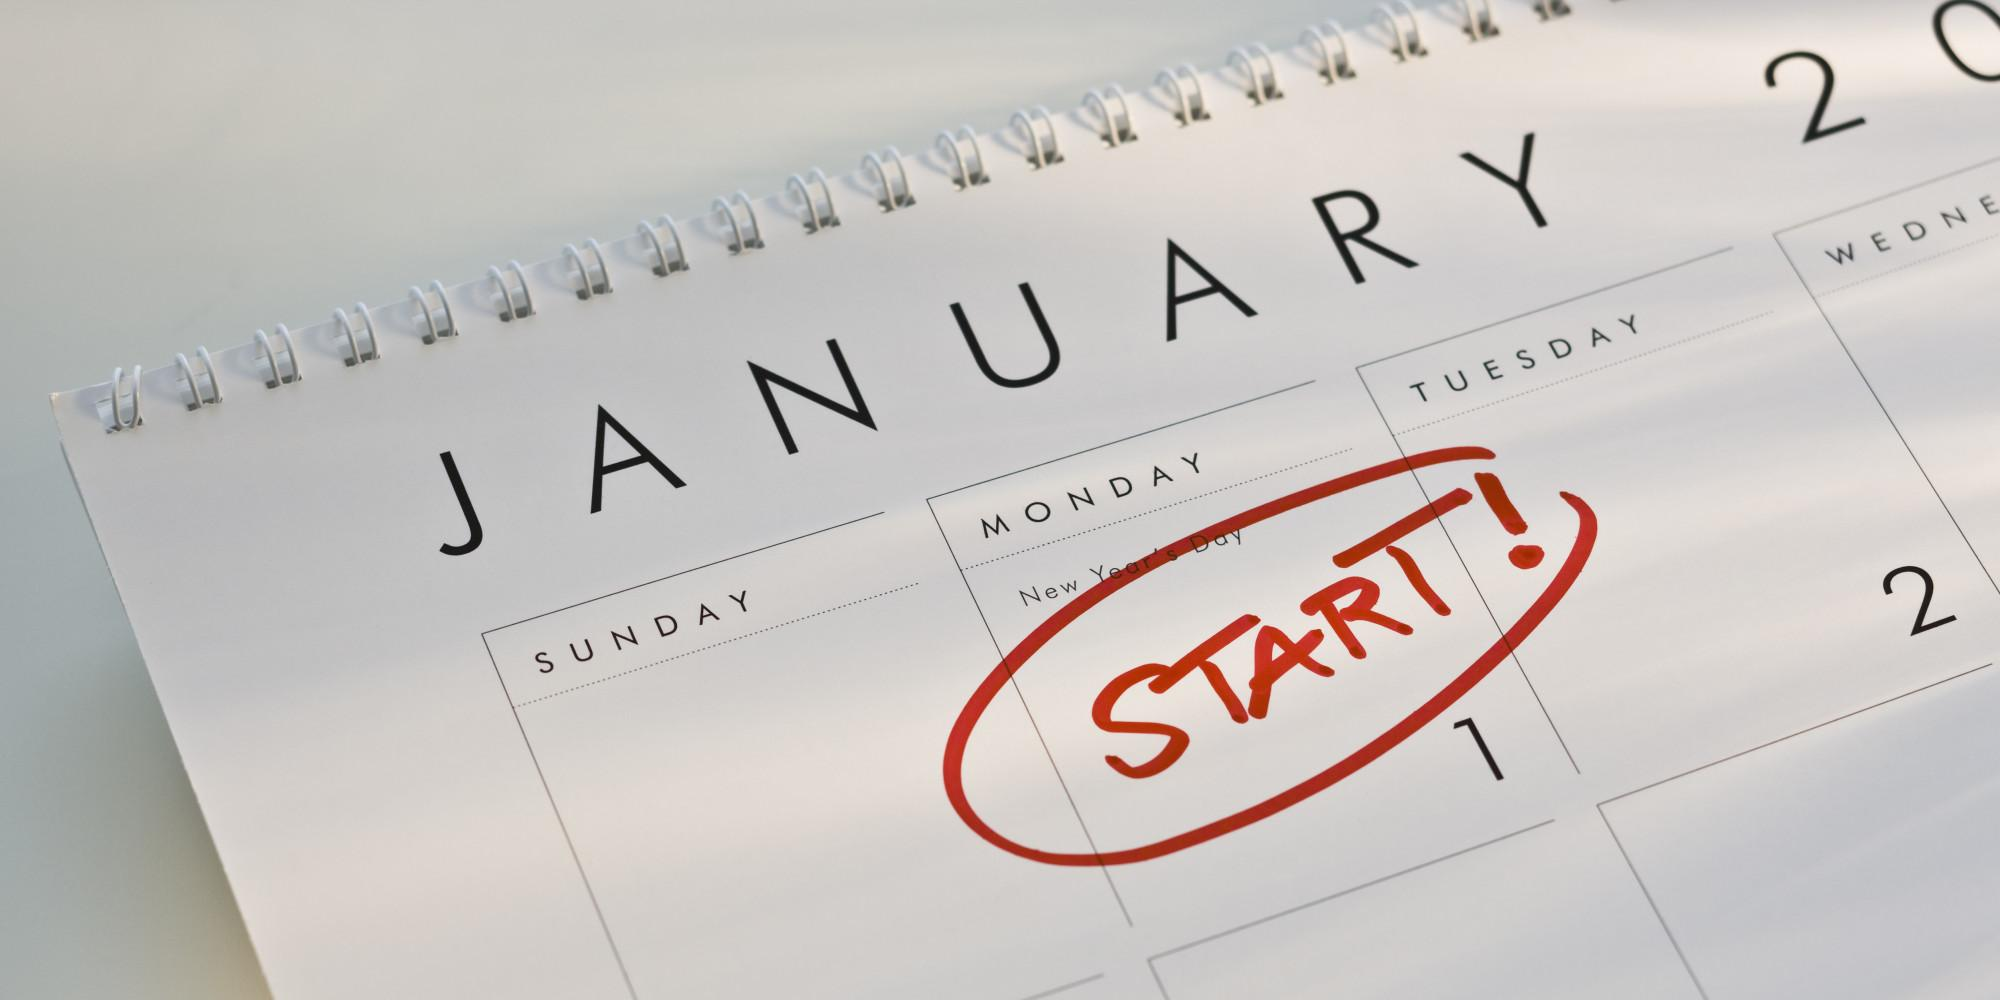 While many people see the new year as a fresh start, the motivation to live a better life should be continued throughout the whole year.